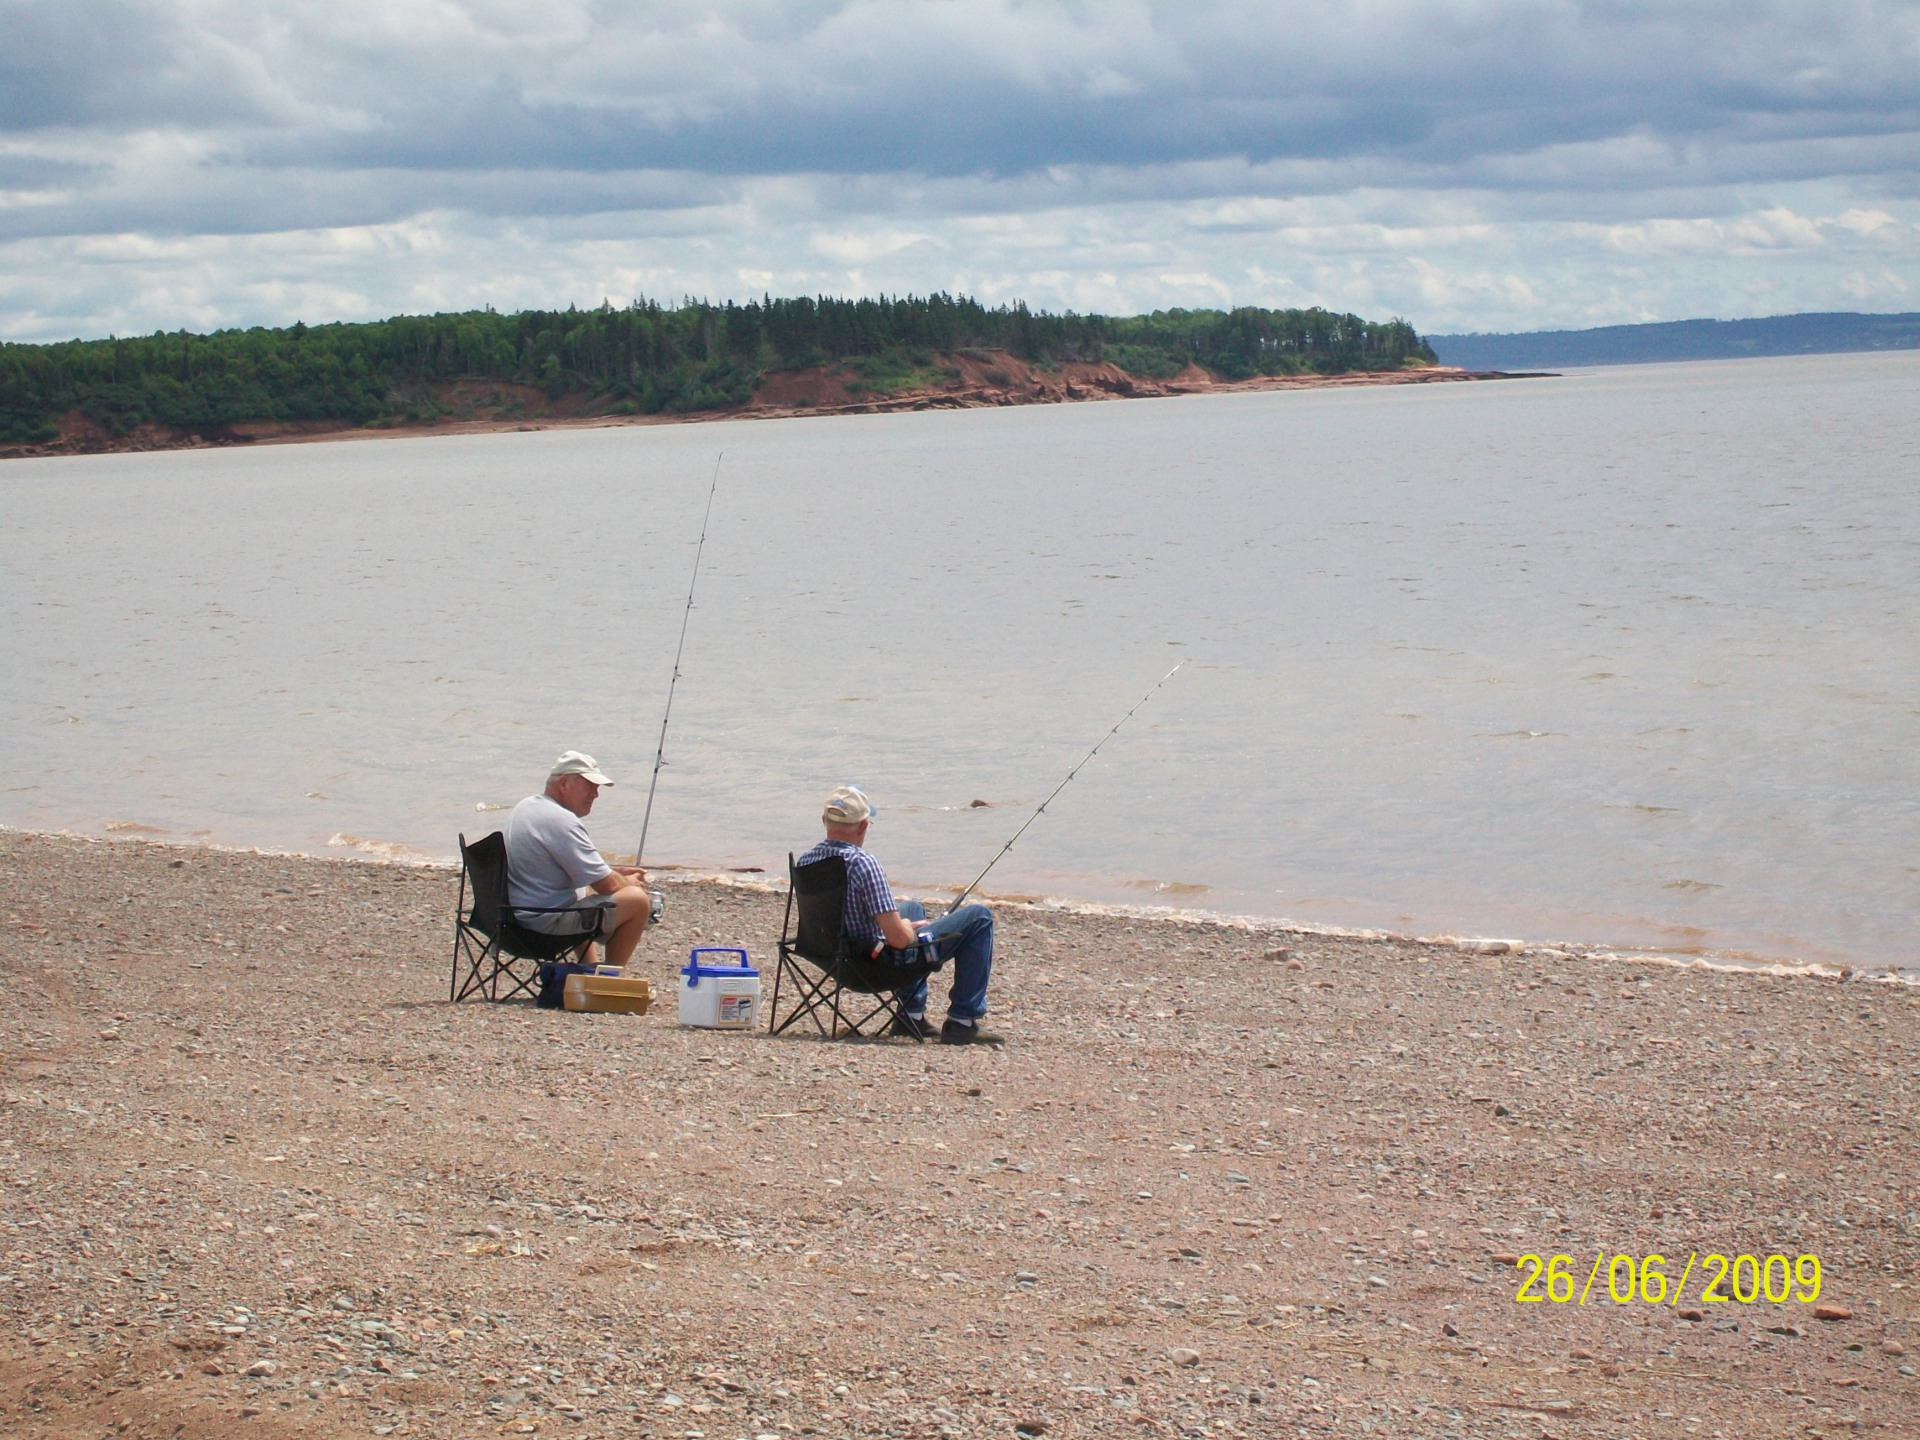 Bass Fishing on the shore of the minus basin